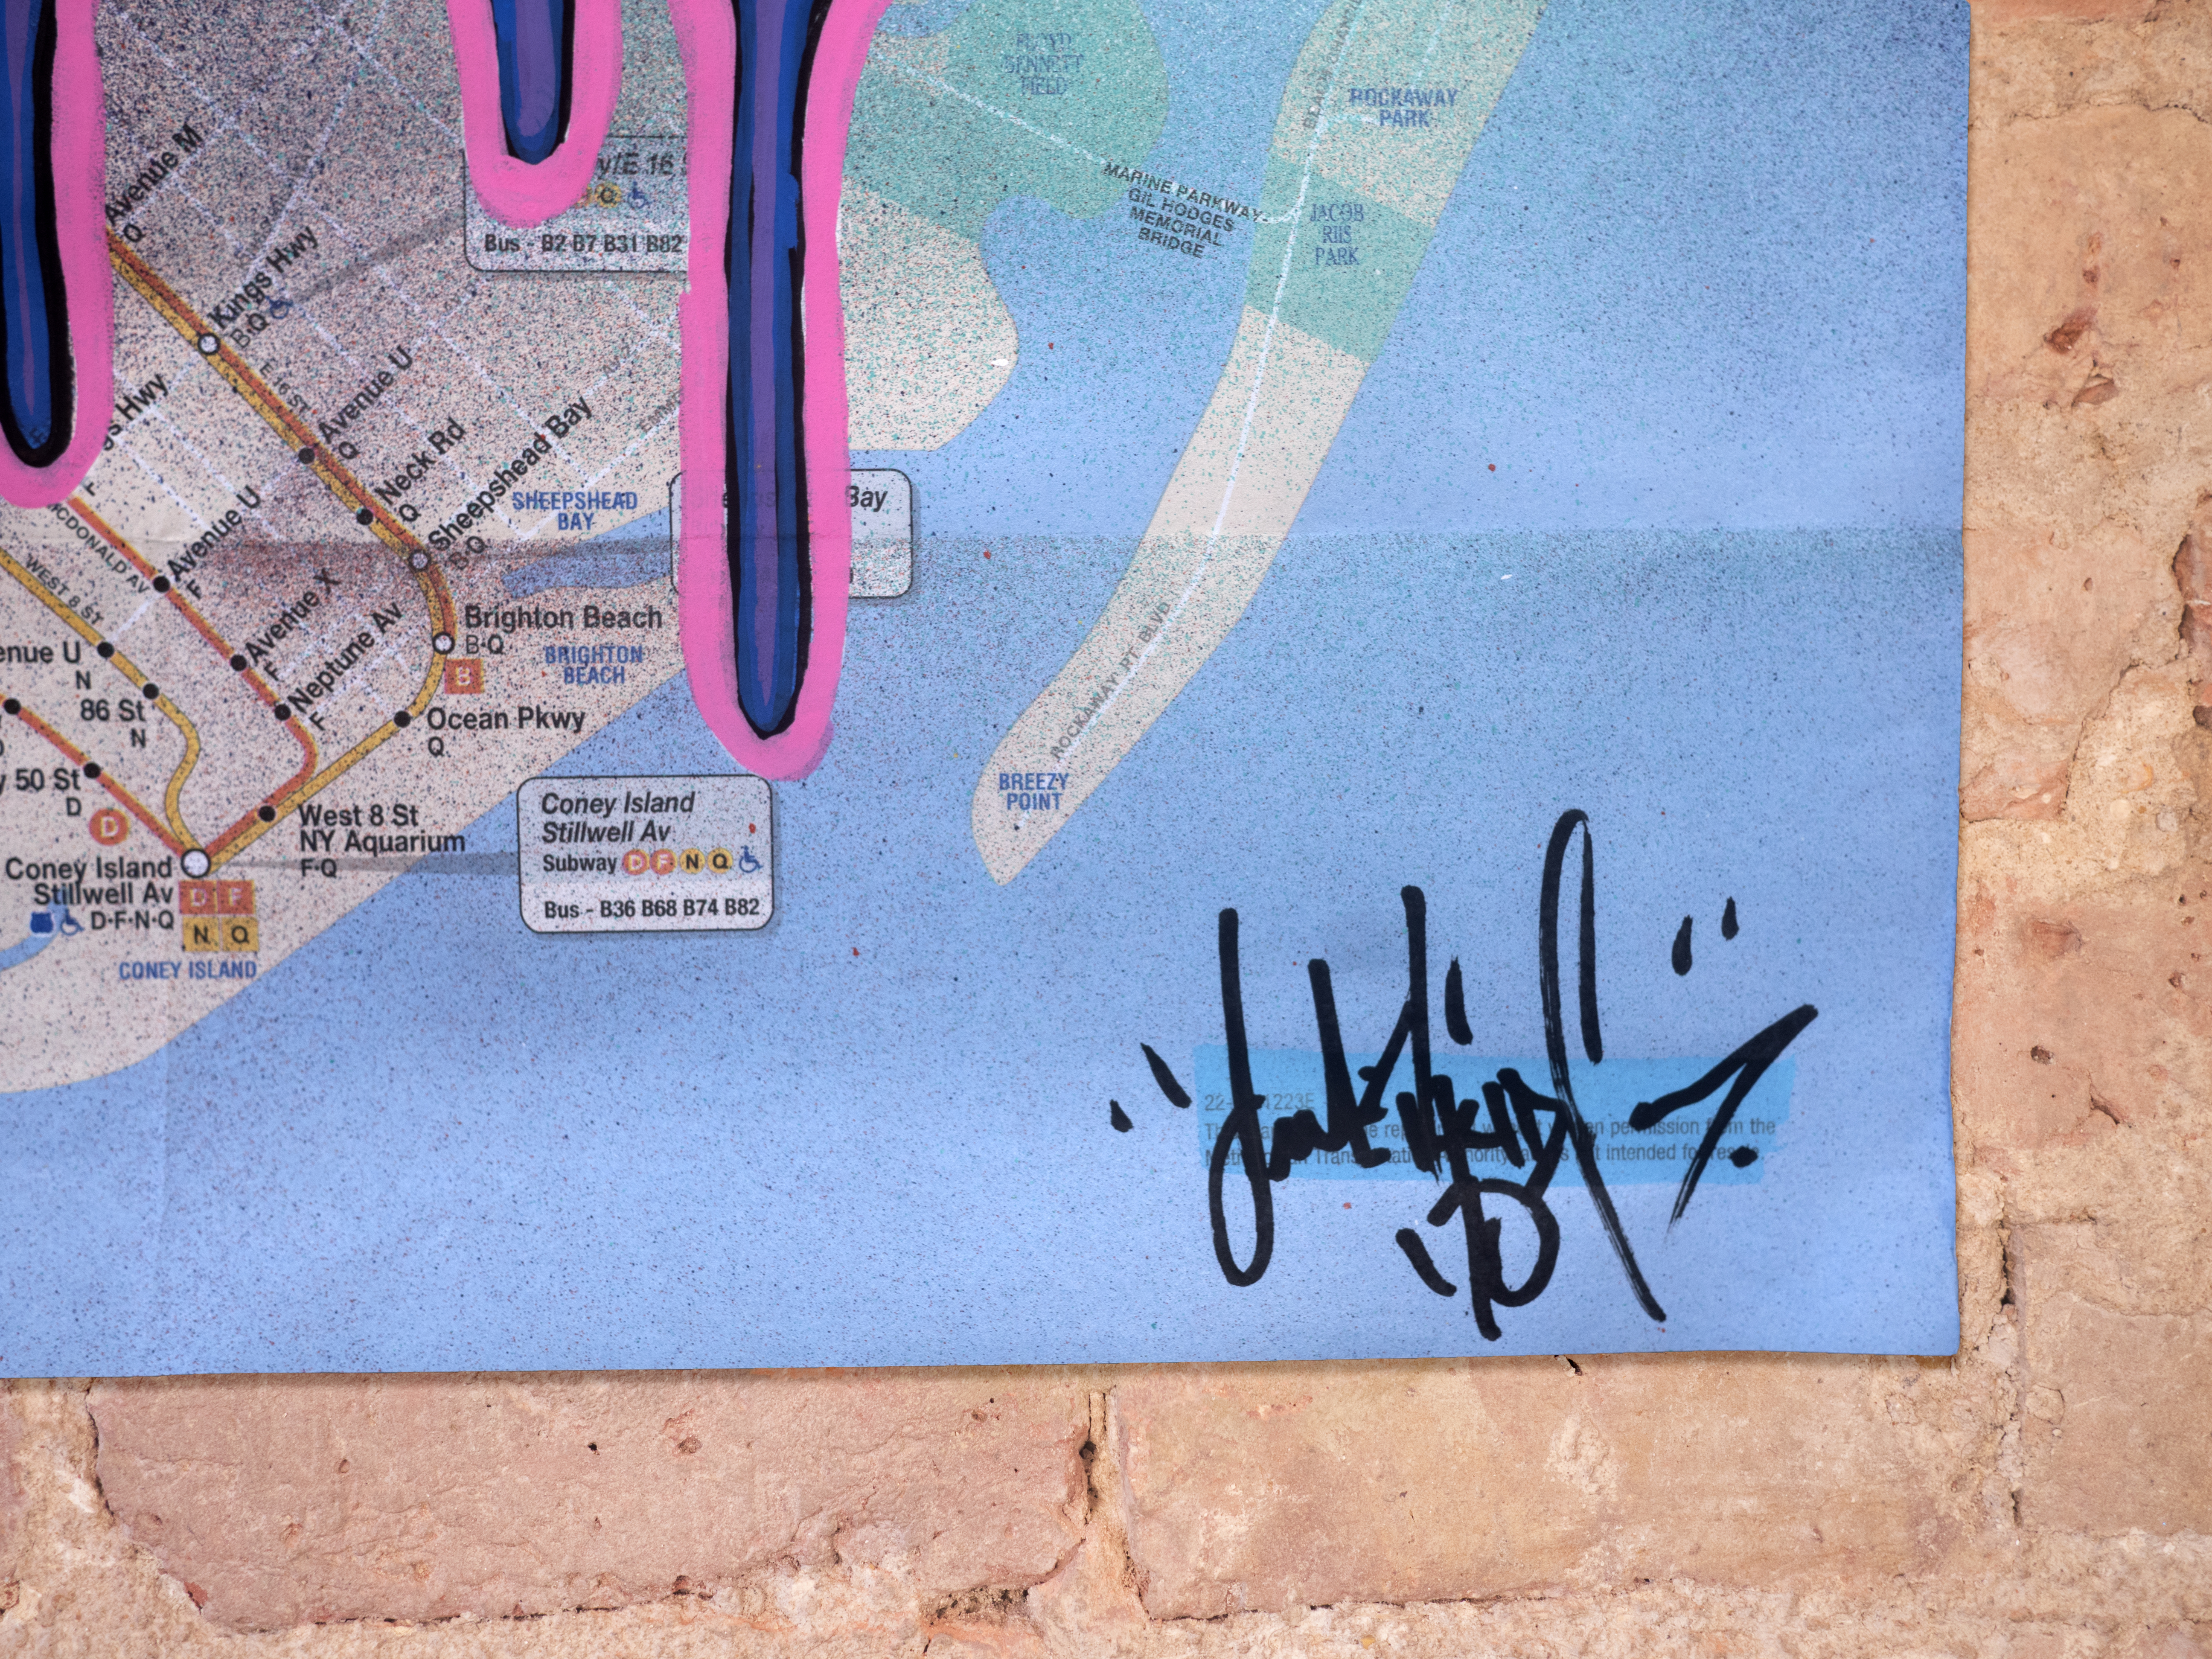 Brighton Beach On Subway Map.Subway Map By T Kid Nelly Duff